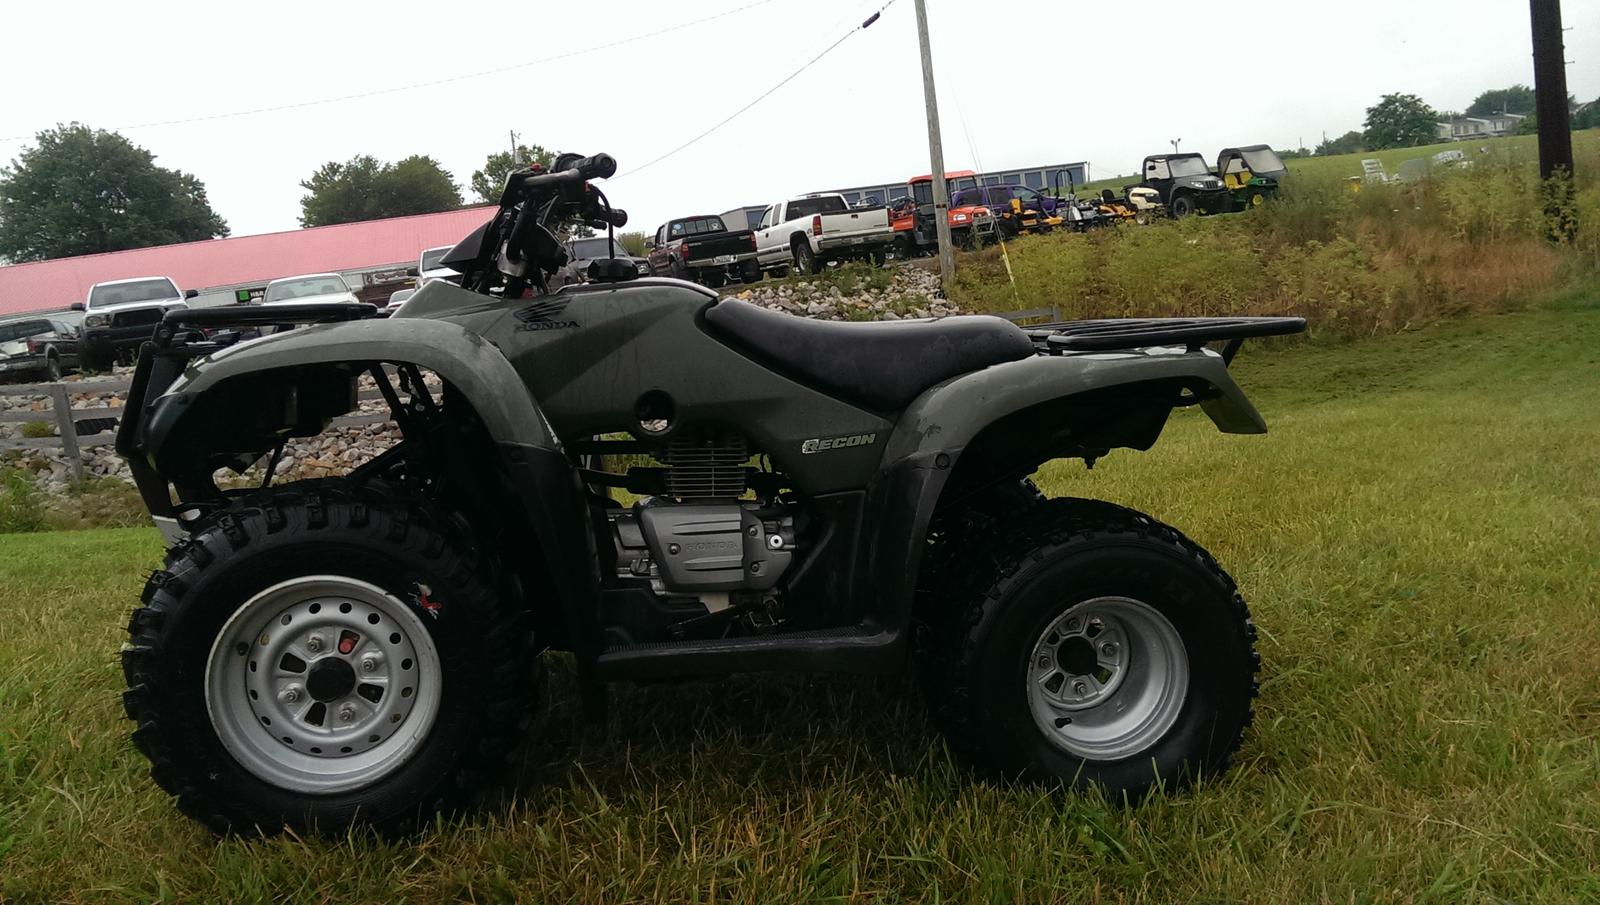 2007 Honda RECON 250 119915 on used harley engines